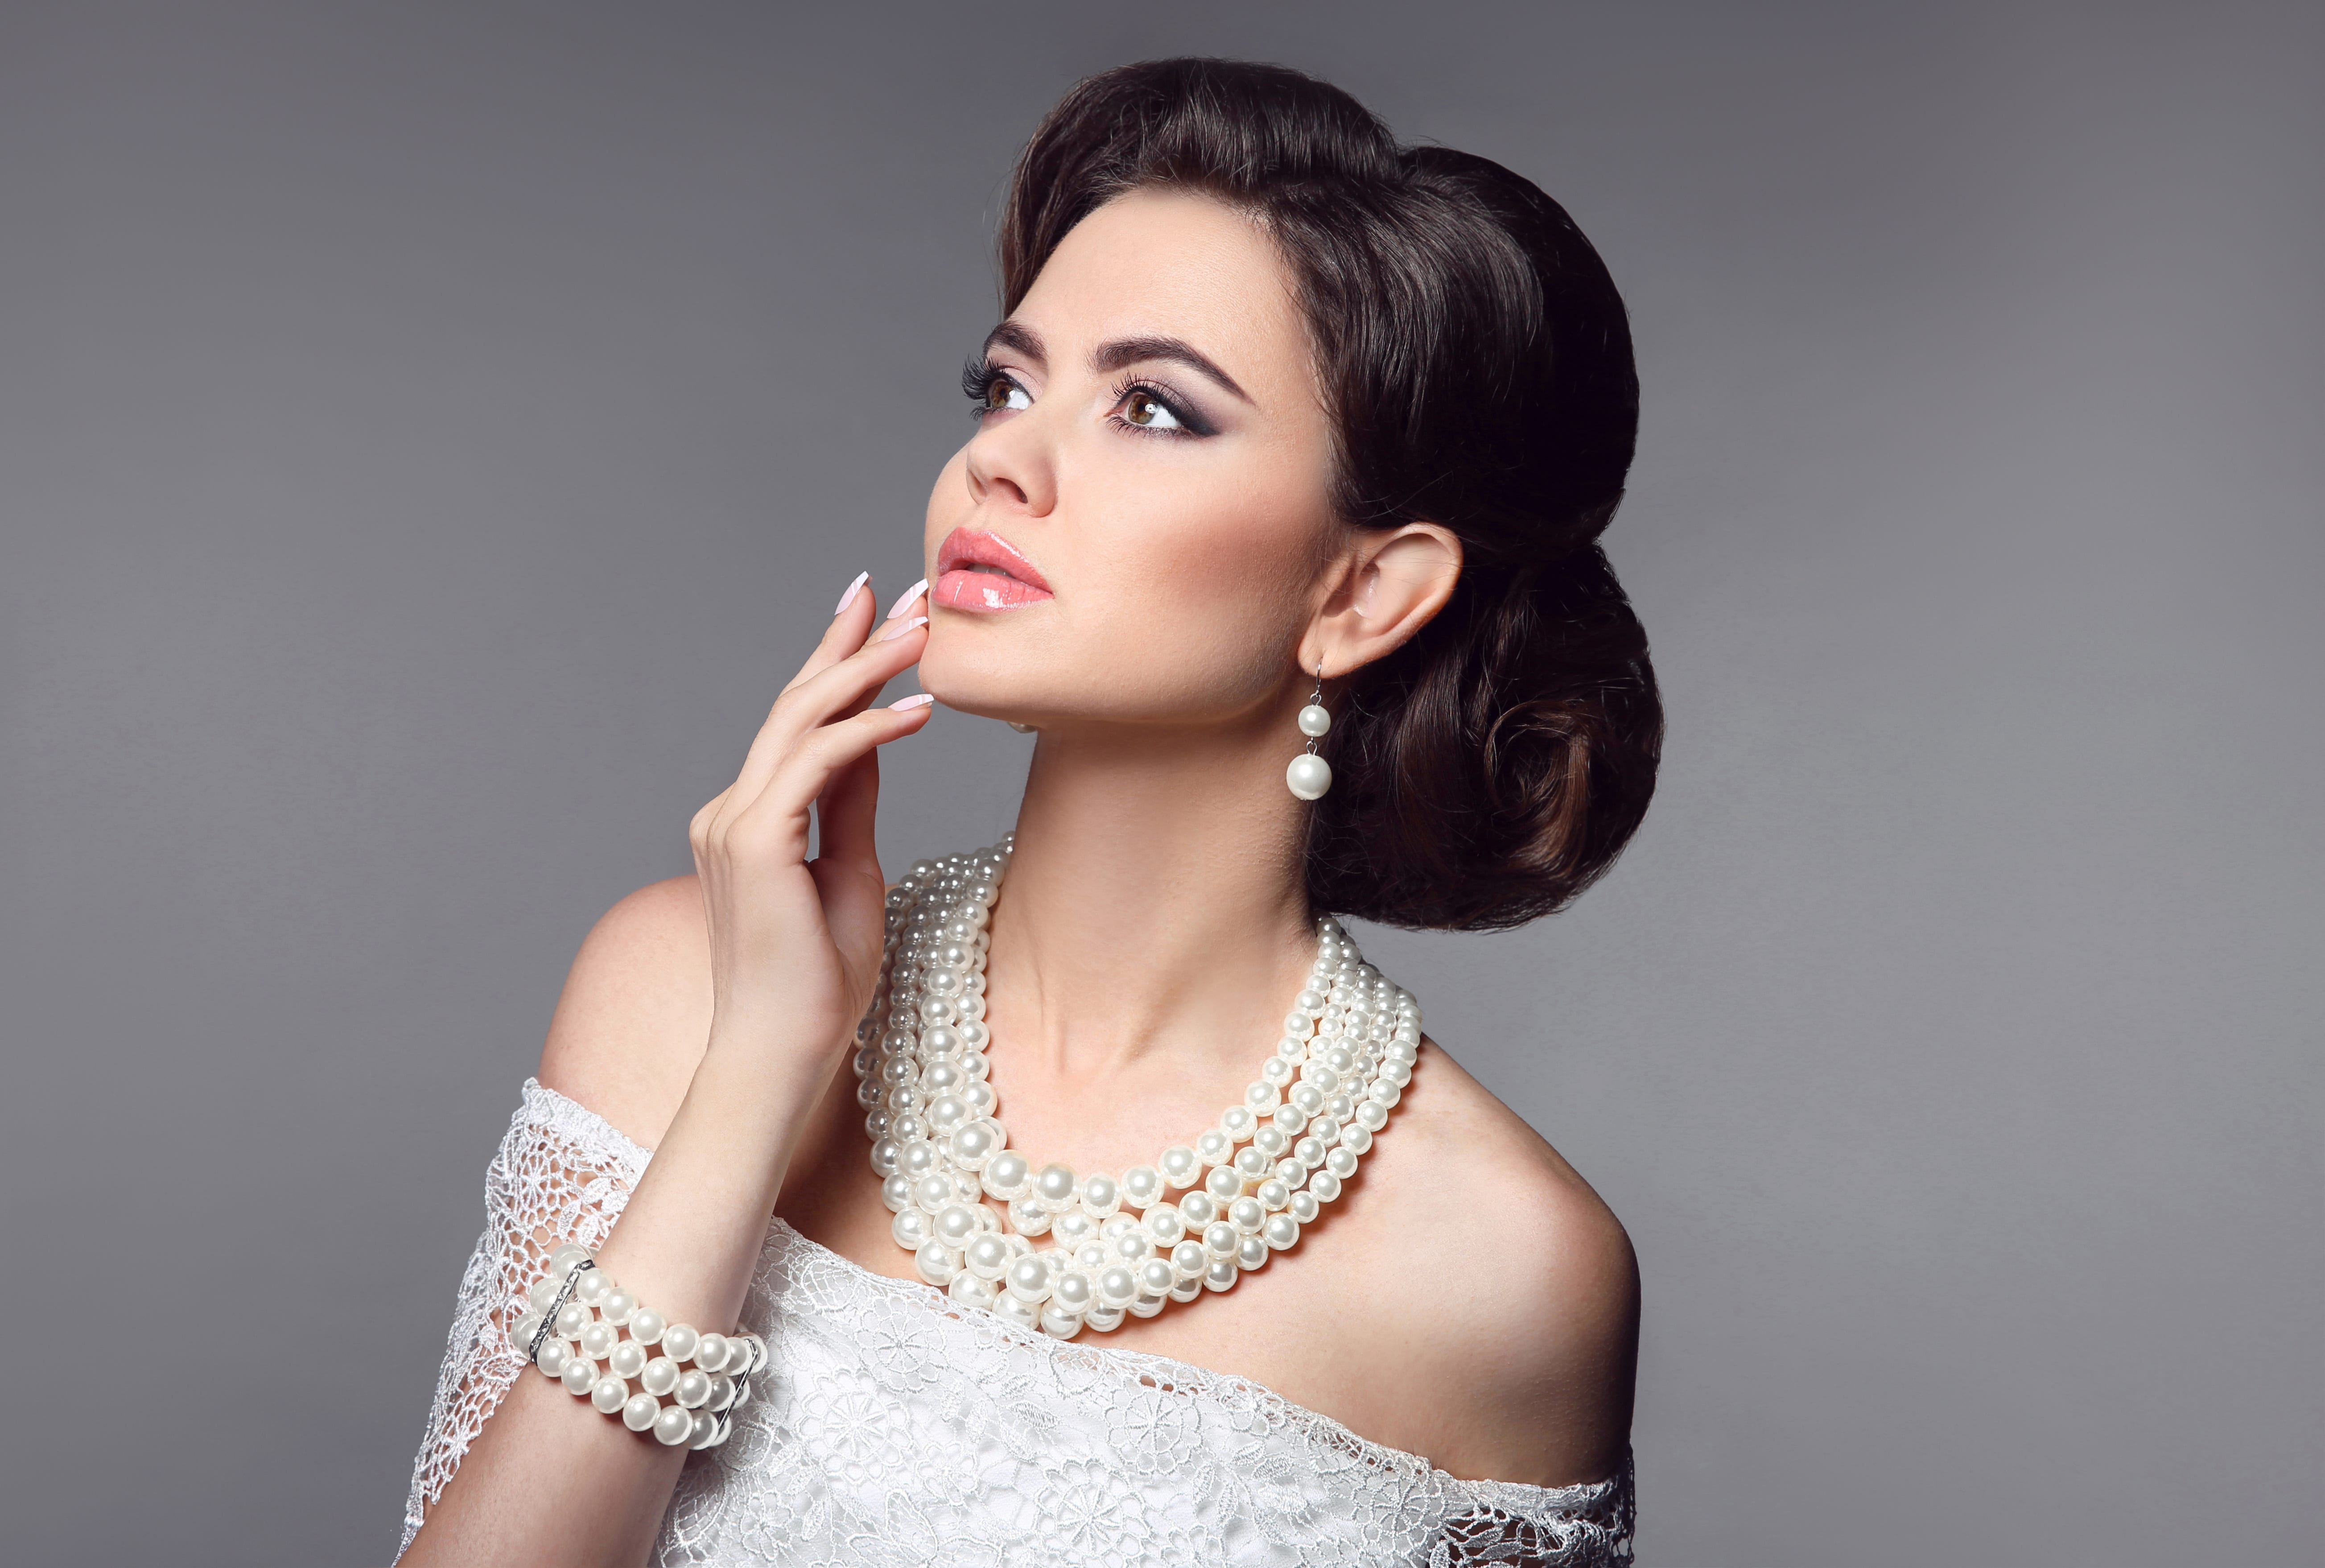 Beauty bride makeup. Elegant fashionable woman portrait. Retro hair style. Brunette model with pearls jewelry